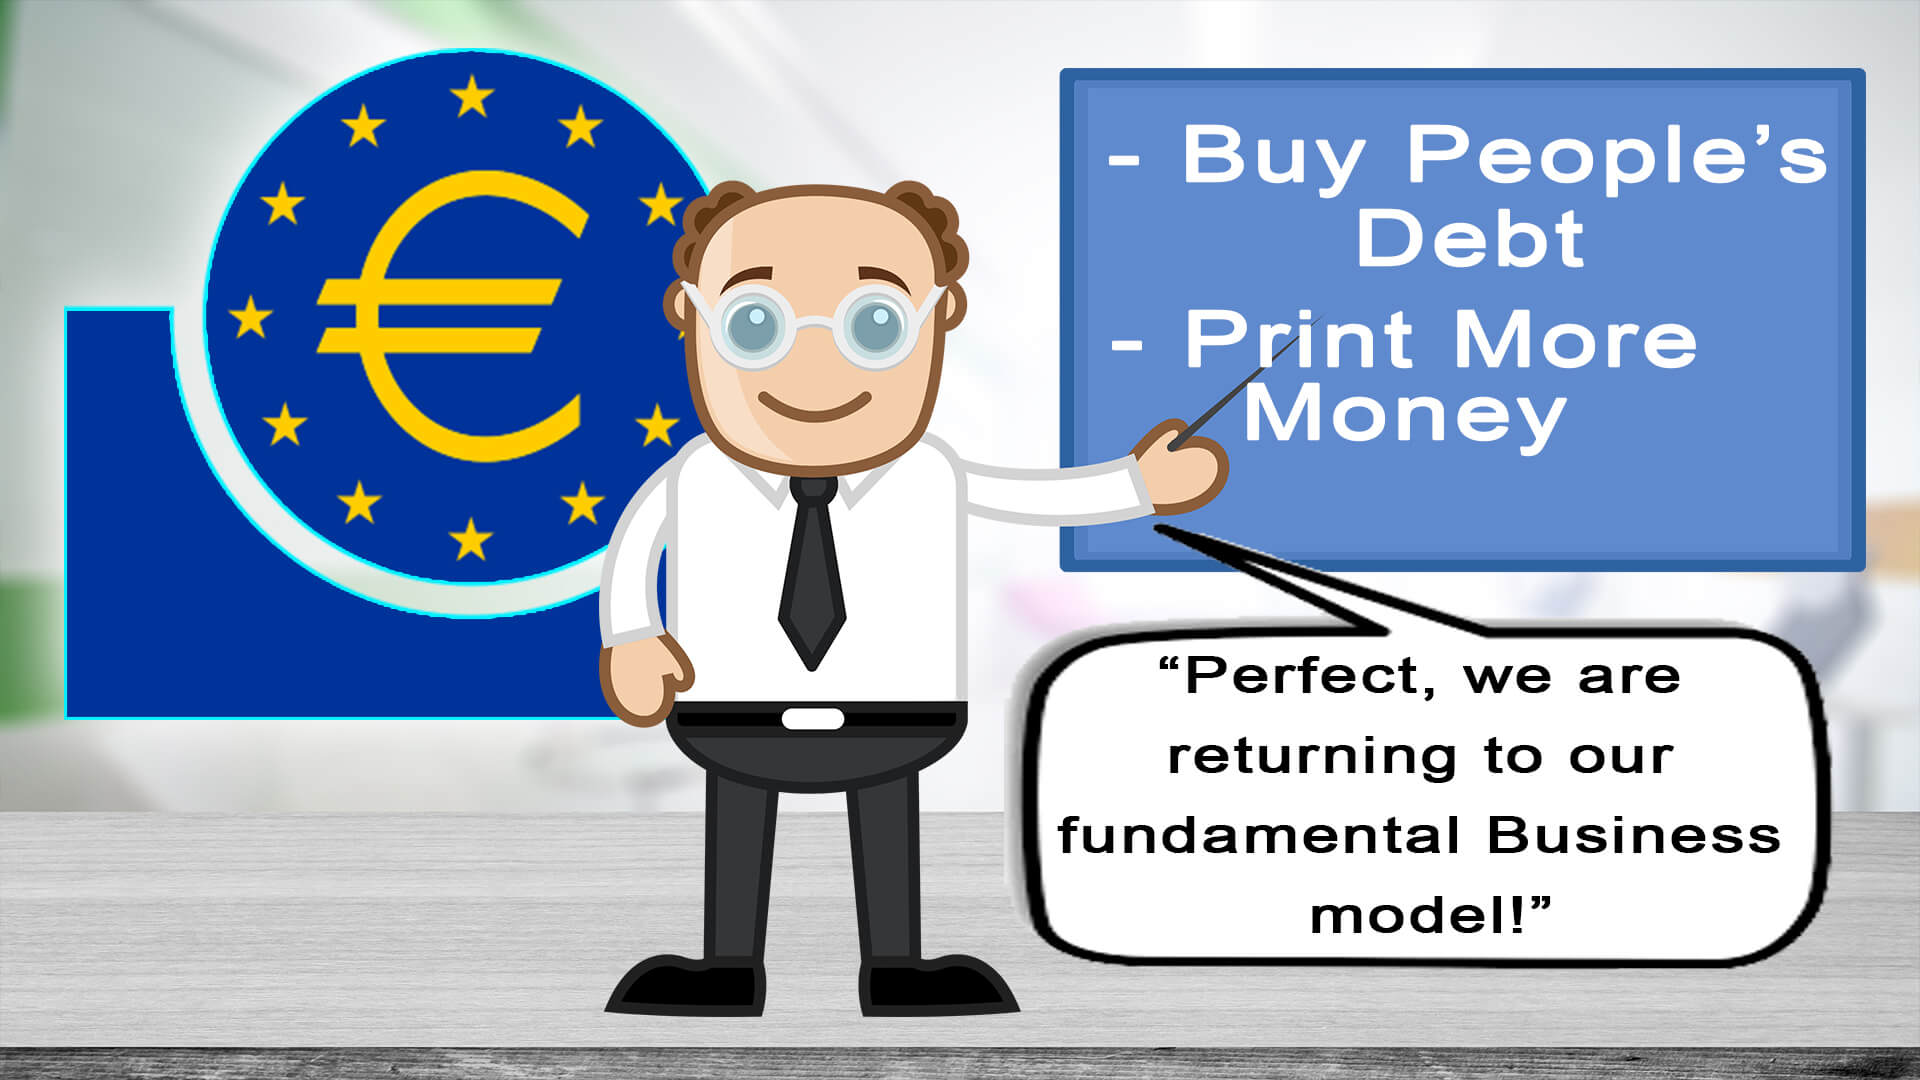 cartoon-man-pointing-to-board-with-words-and-text-below-with-ecb-logo-in-background